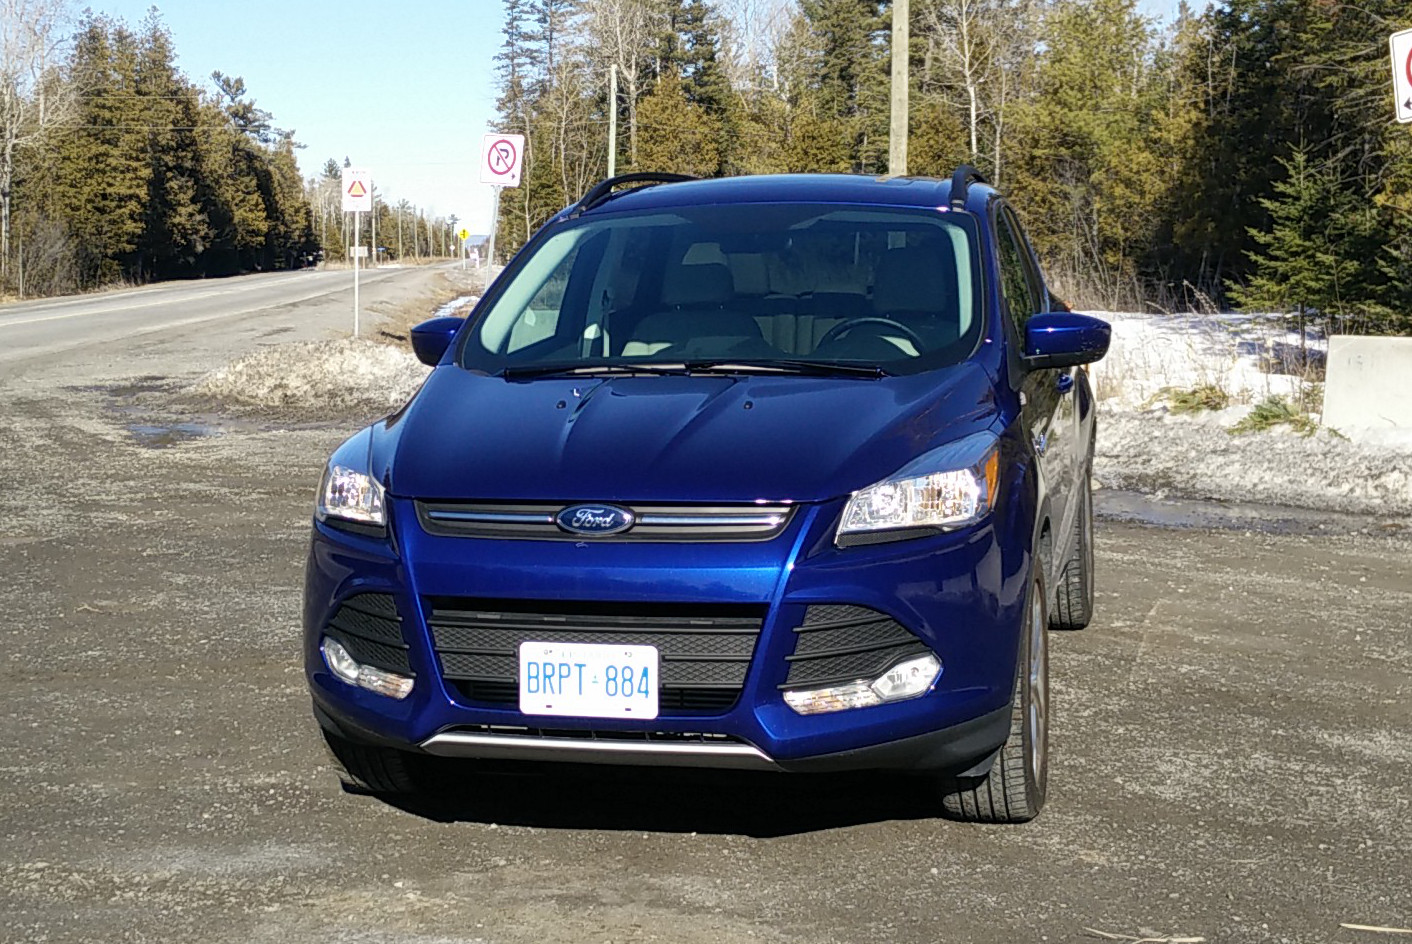 Ford Escape Se >> 2016 Ford Escape - Autos.ca